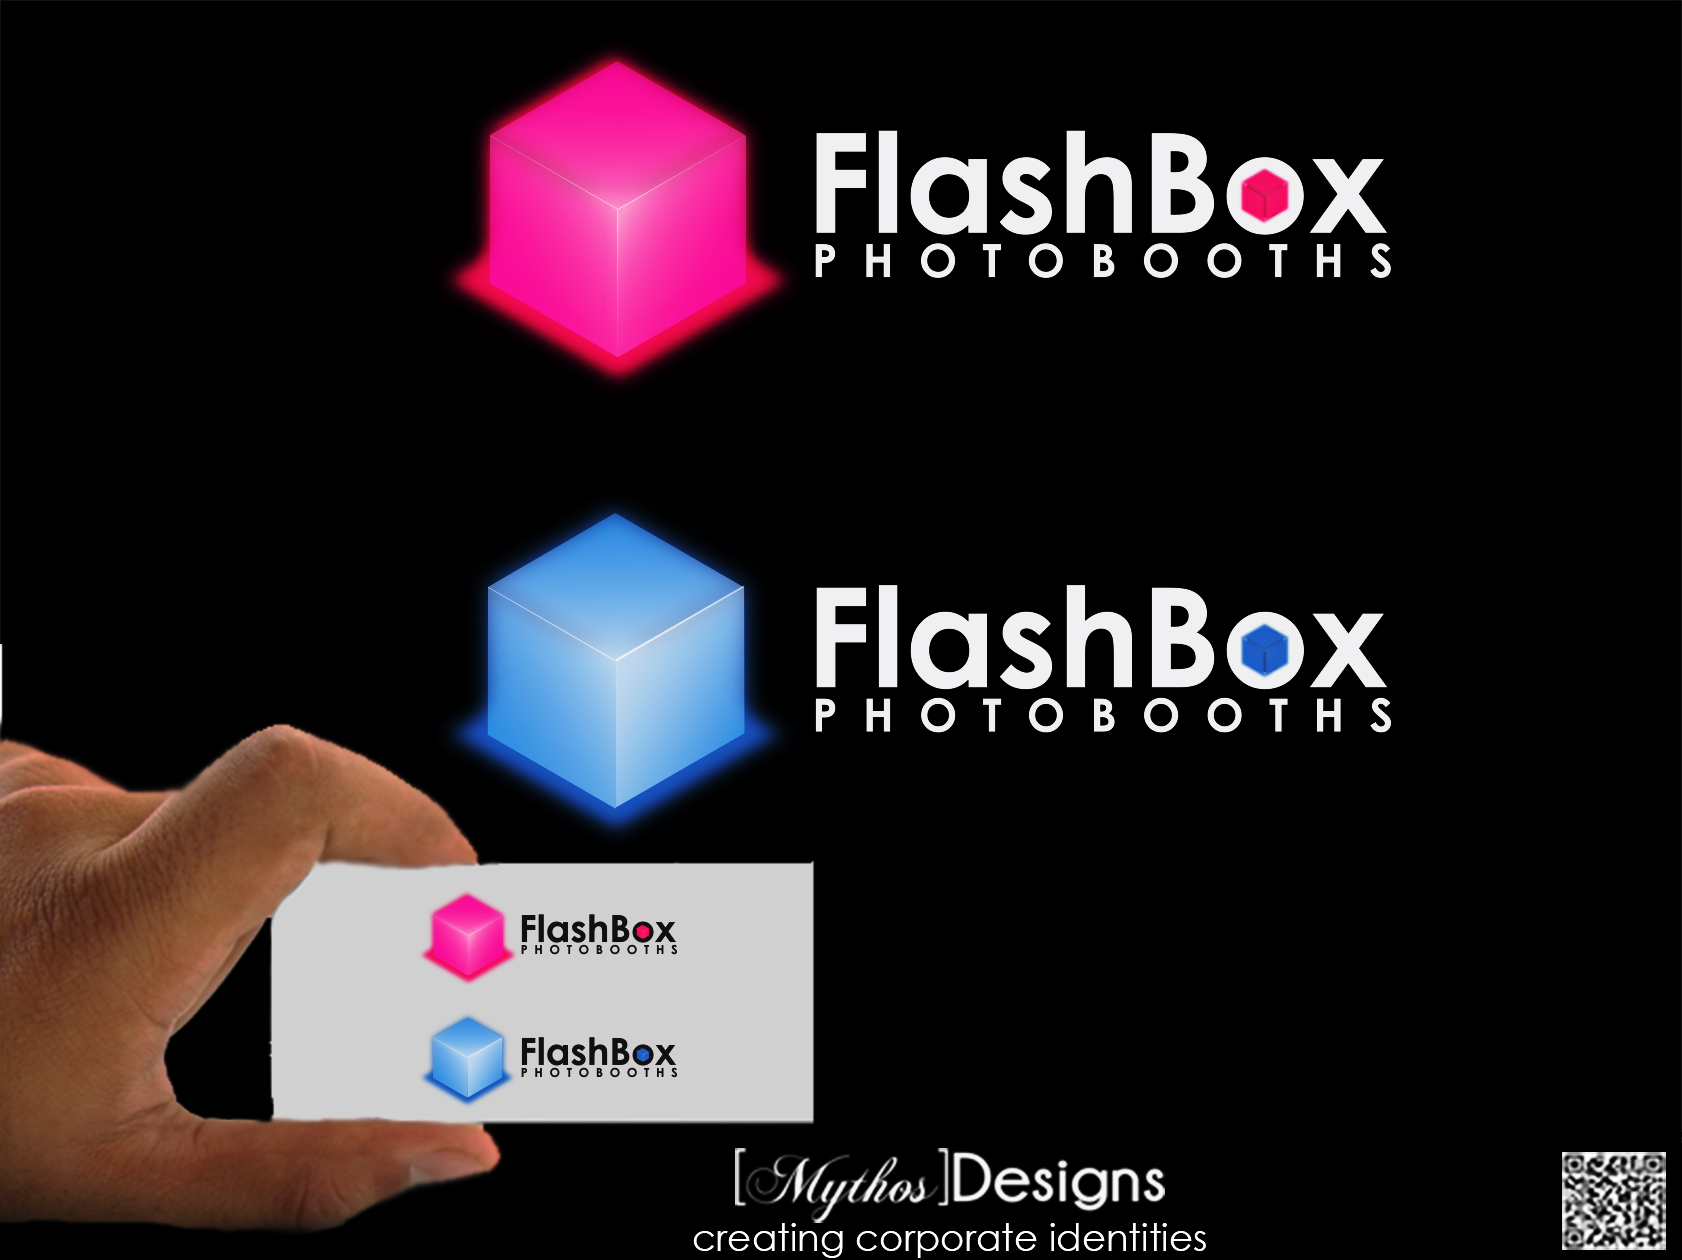 Logo Design by Mythos Designs - Entry No. 131 in the Logo Design Contest New Logo Design for FlashBox Photobooths.